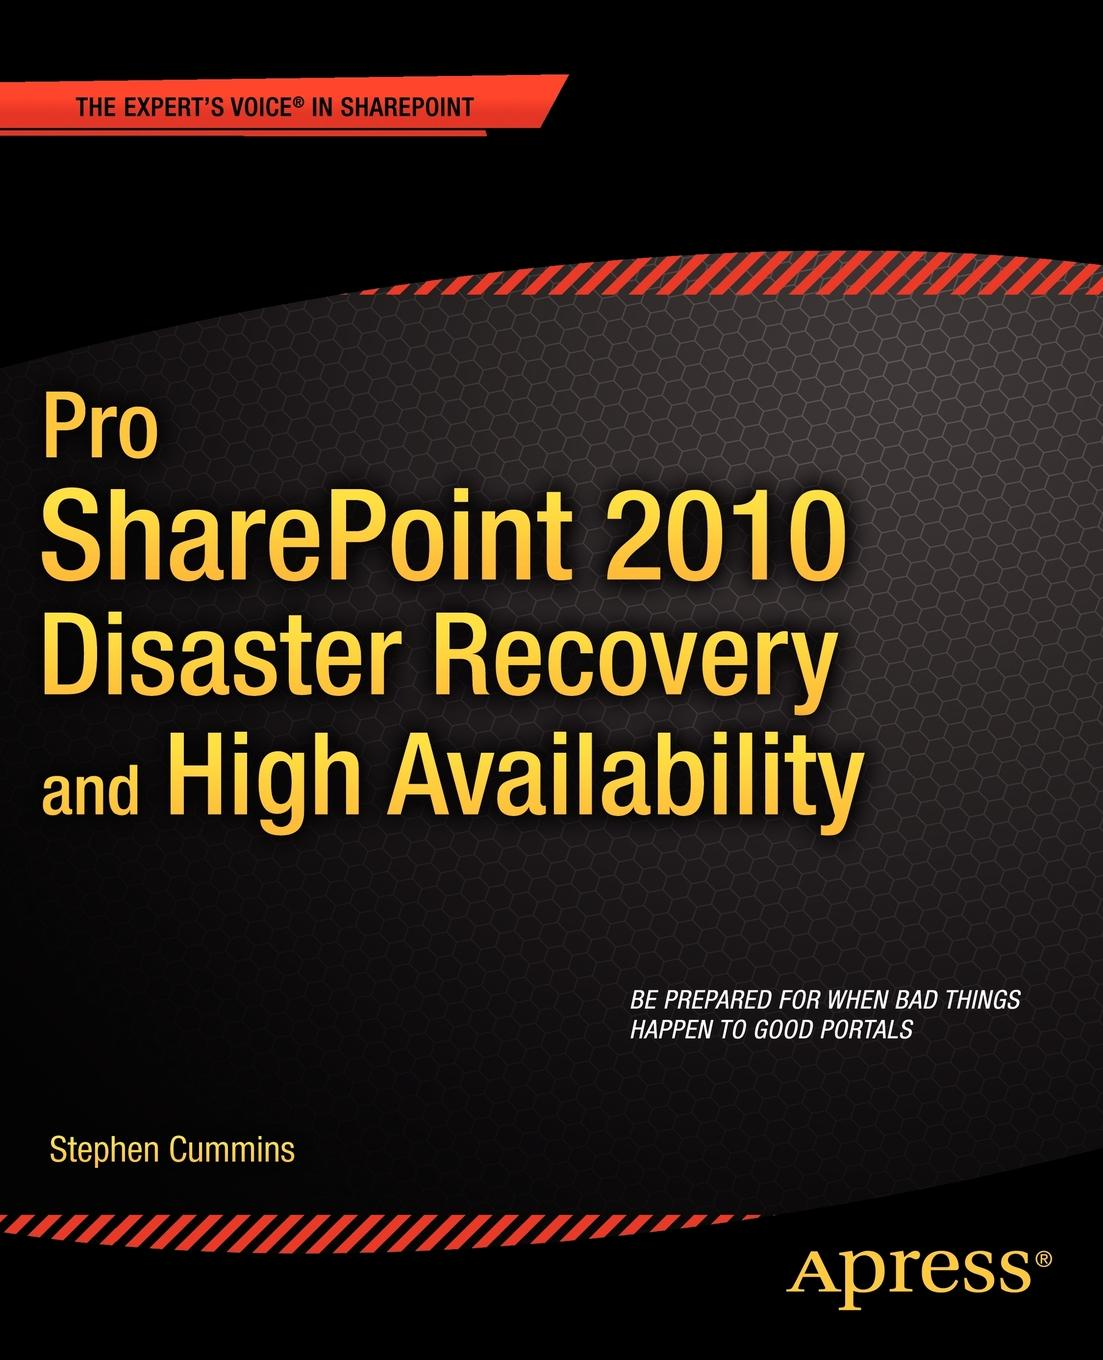 цена на Stephen Cummins Pro Sharepoint 2010 Disaster Recovery and High Availability